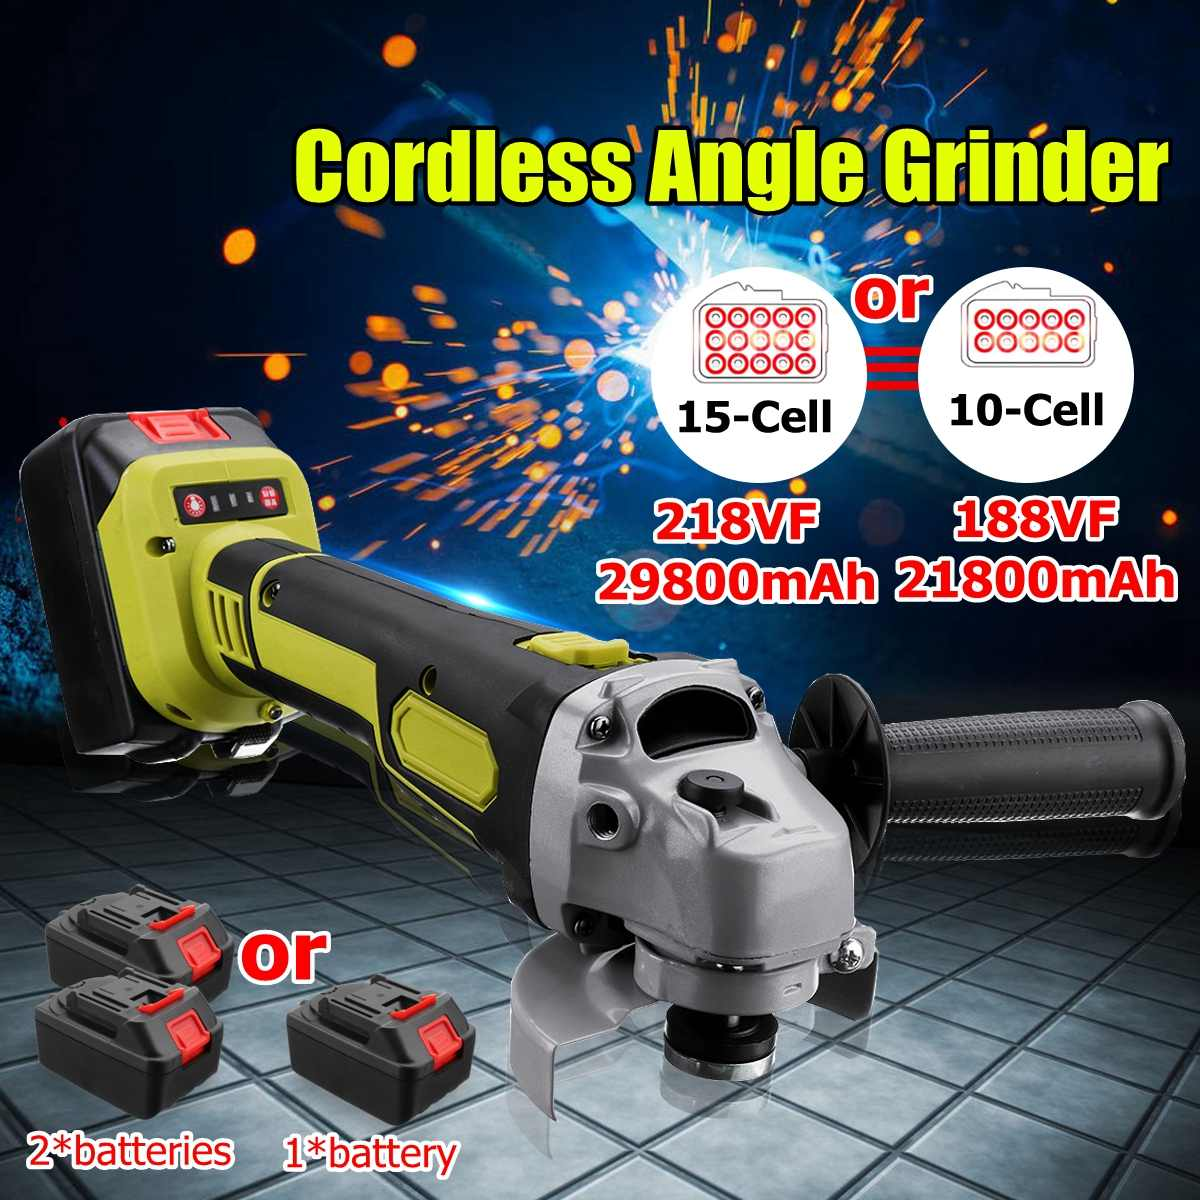 188VF/218VF Electric Angle Grinder Cordless 10/15-cell large capacity battery Polisher Polishing Machine Cutting Tool Set188VF/218VF Electric Angle Grinder Cordless 10/15-cell large capacity battery Polisher Polishing Machine Cutting Tool Set